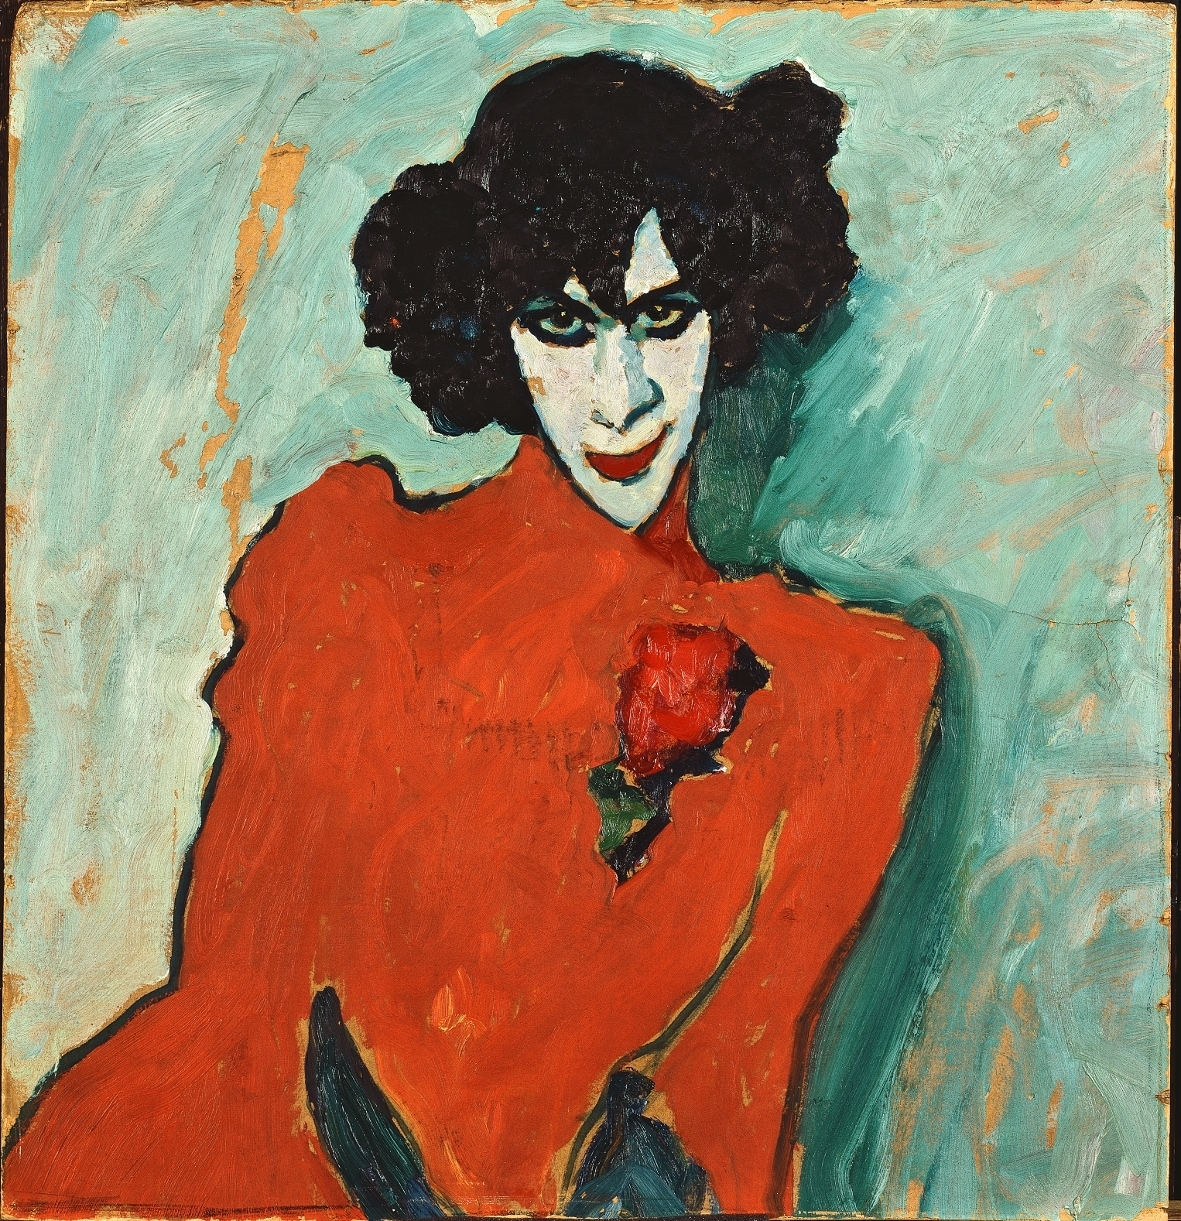 ALEXEJ JAWLENSKY: Bildnis des Tänzers Sacharoff / Portrait of the Dancer Alexander Sacharoff, 1909. © Städtische Galerie im Lenbachhaus und Kunstbau, München